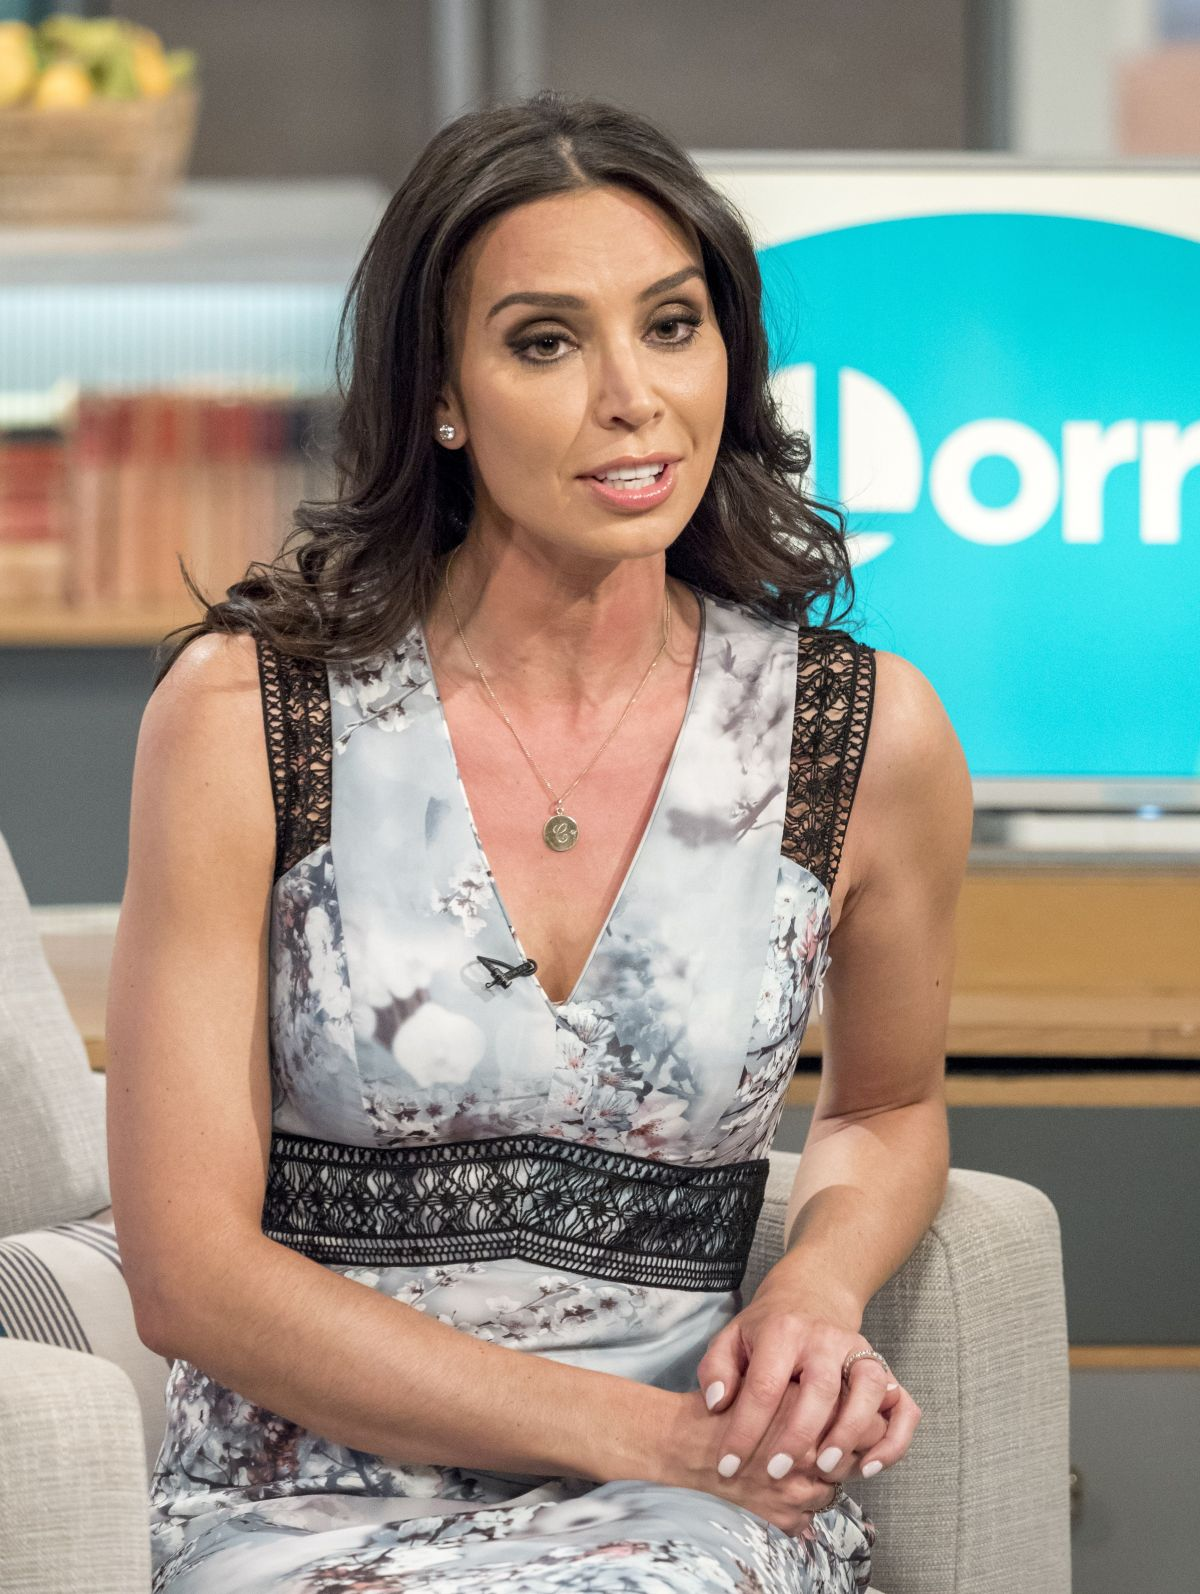 CHRISTINE BLEAKLEY at Lorraine Show in London 04/20/2017